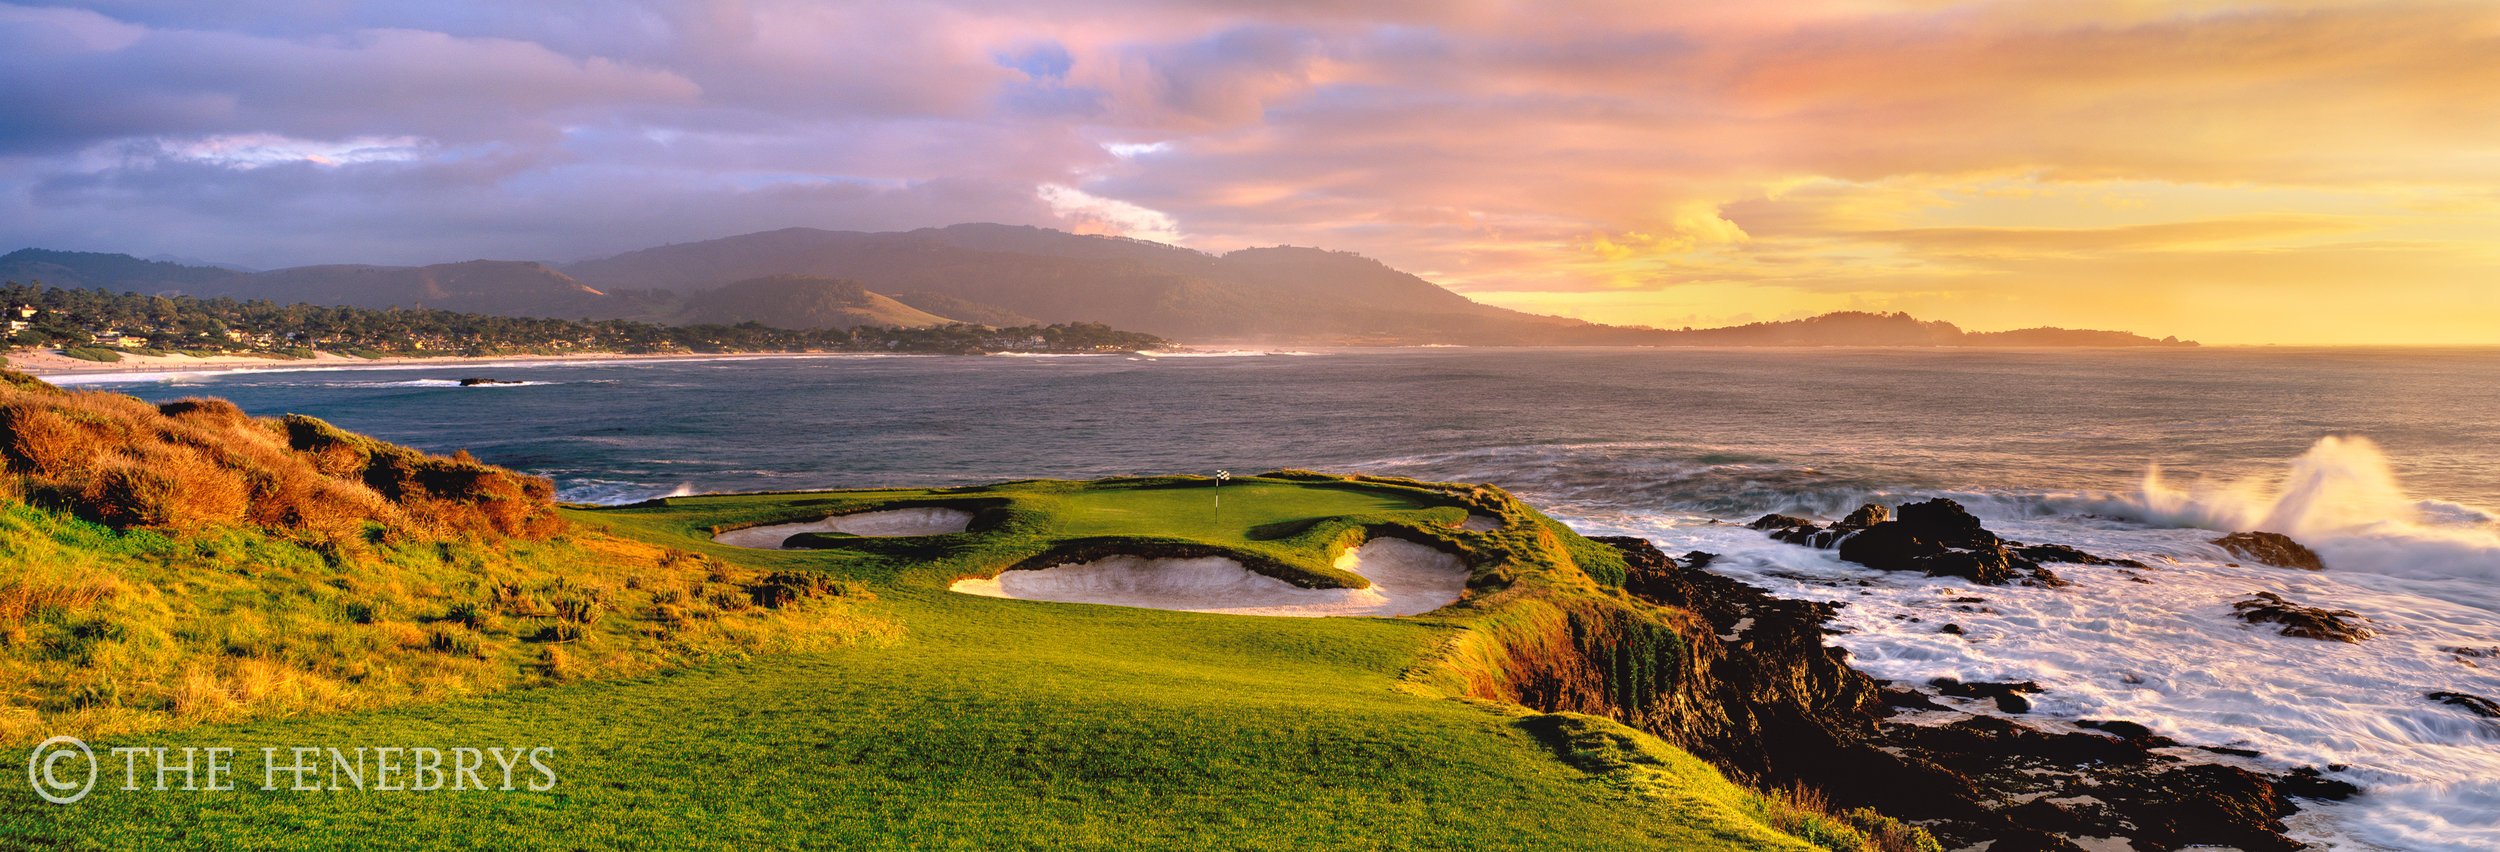 "Pebble Beach Golf Links® #07 ""After The Storm"", Pebble Beach, California"